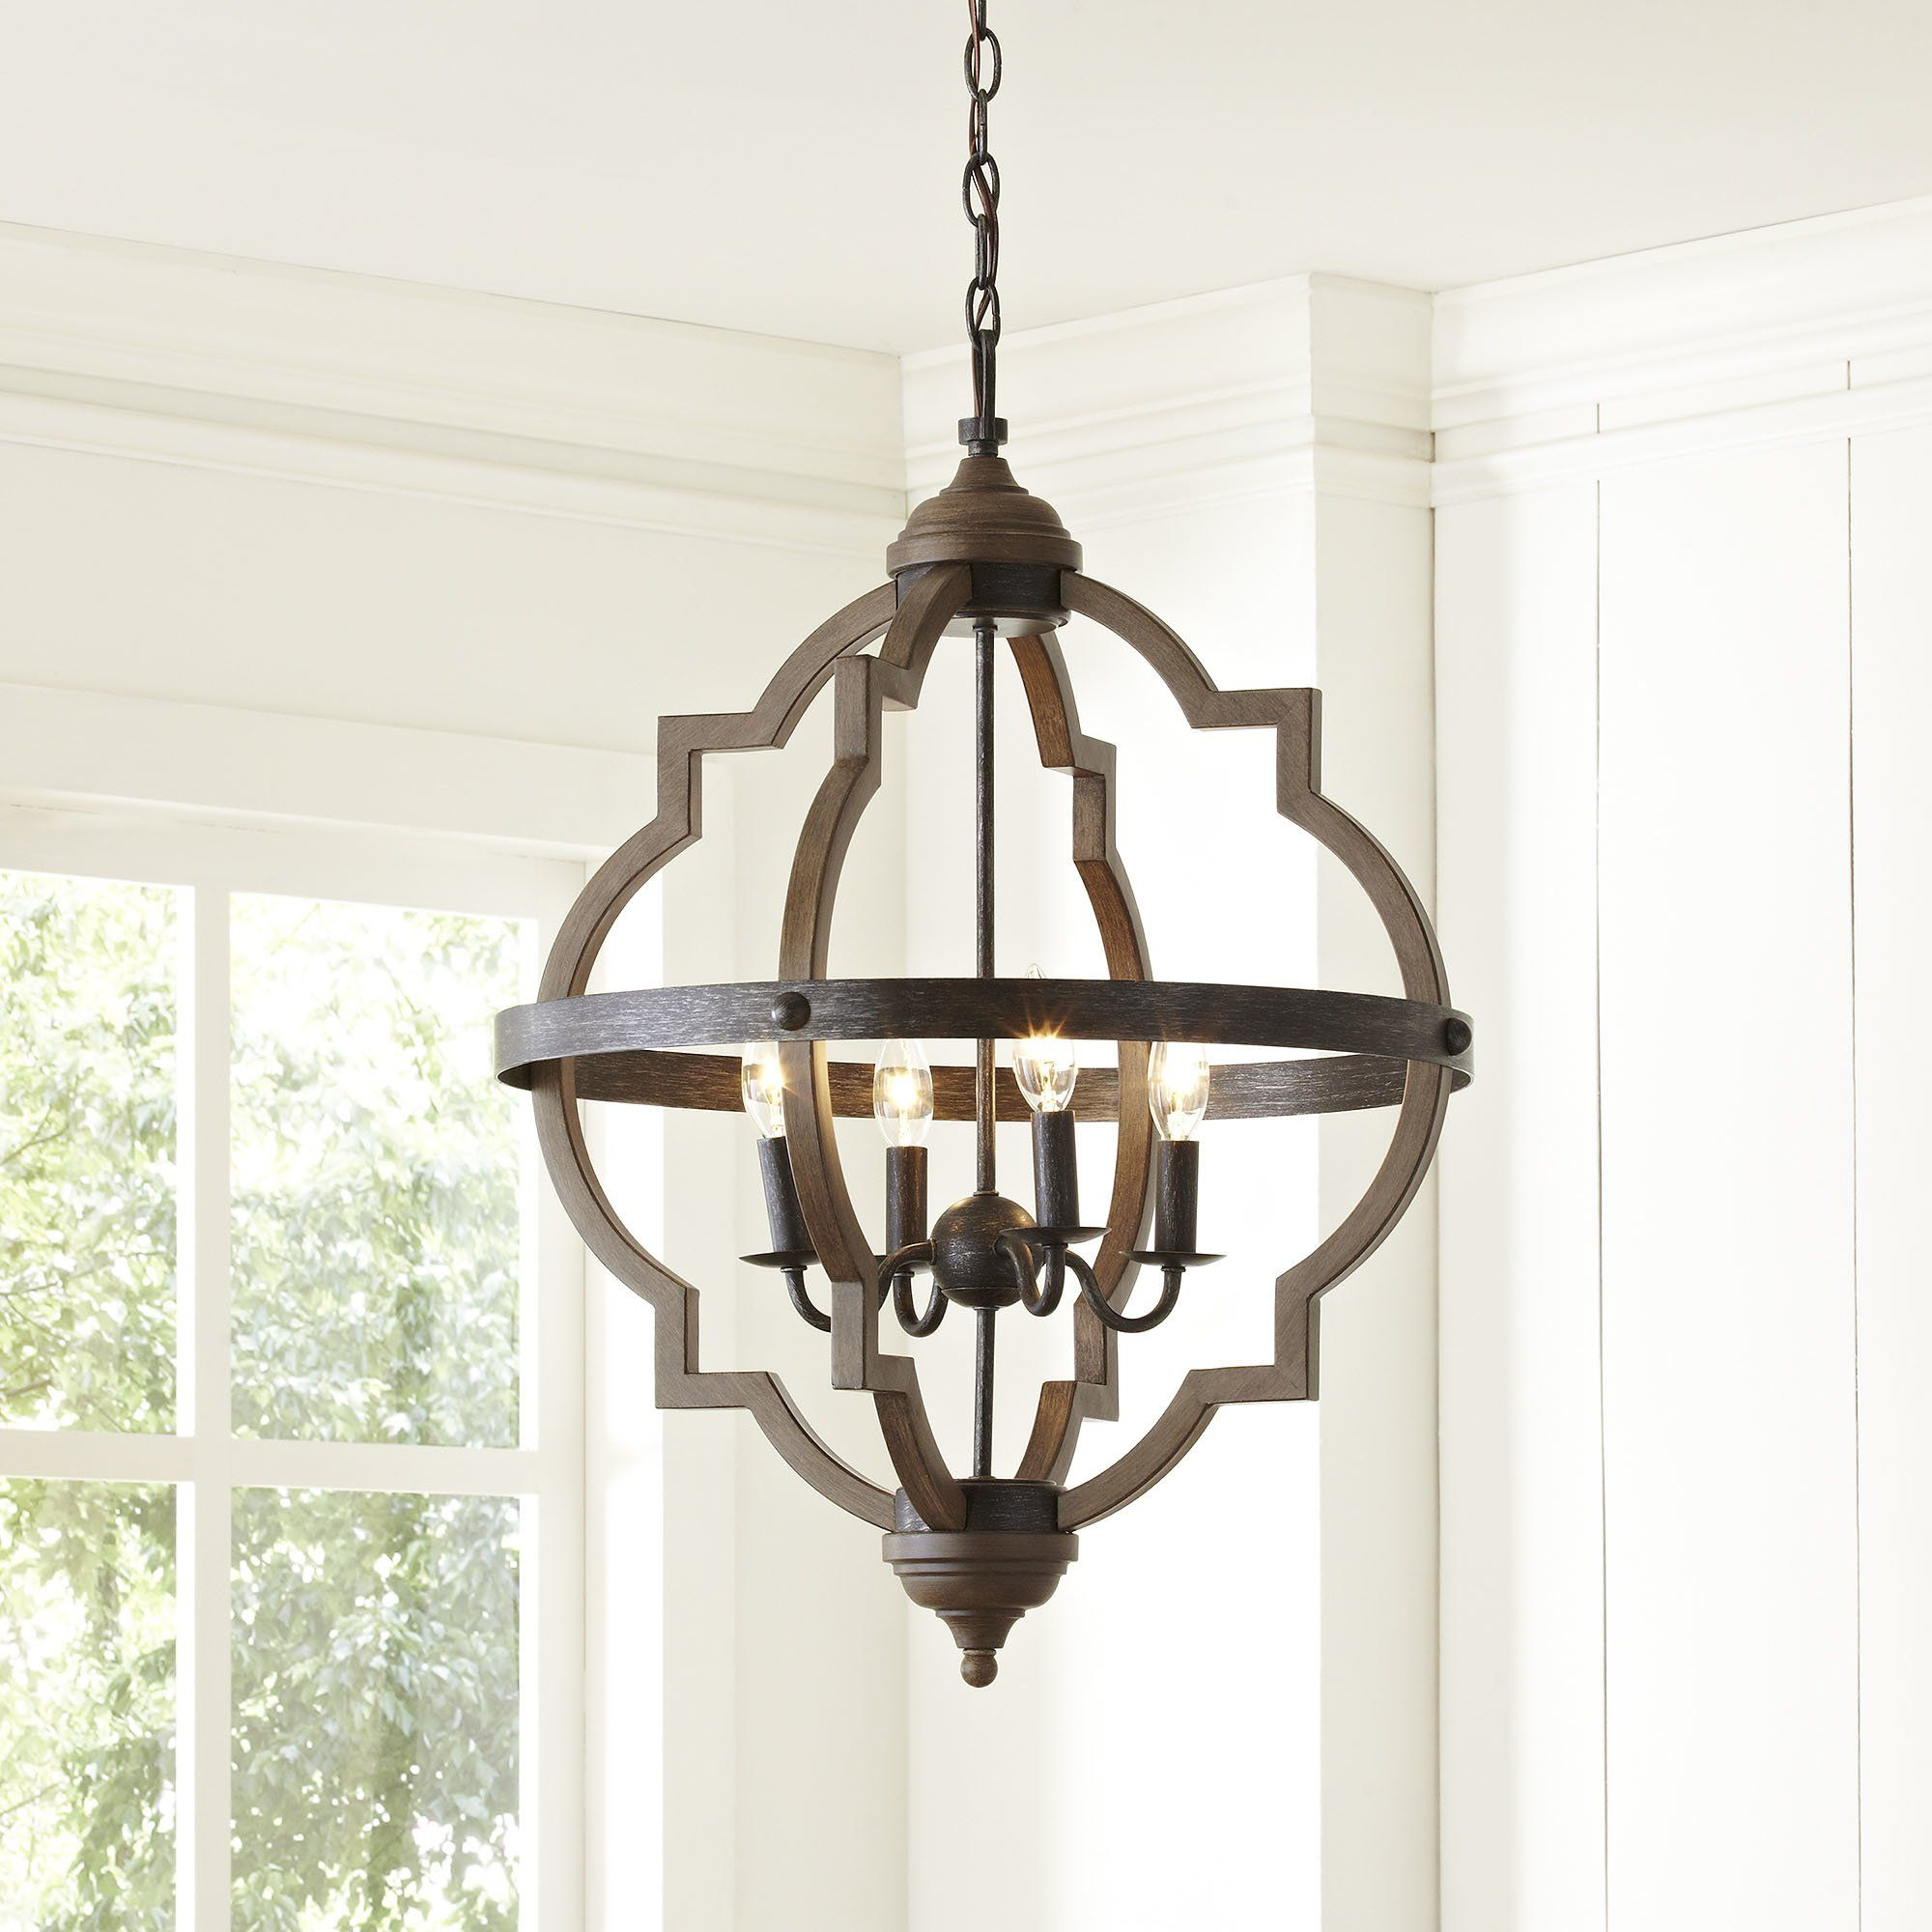 Bennington 6 Light Candle Style Chandelier | Kitchen & Bath Inside Bennington 6 Light Candle Style Chandeliers (View 4 of 30)